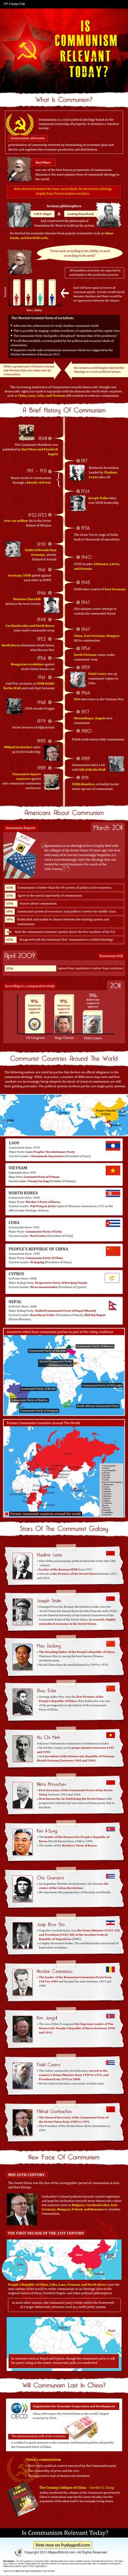 Find In-depth Review And Infographic About Communism. Learn more about its history, communism vs socialism, communist countries of the world and stars of communism – Fidel Castro, Mikhail Gorbachev, Che Guevara, Hugo Chavez and others.